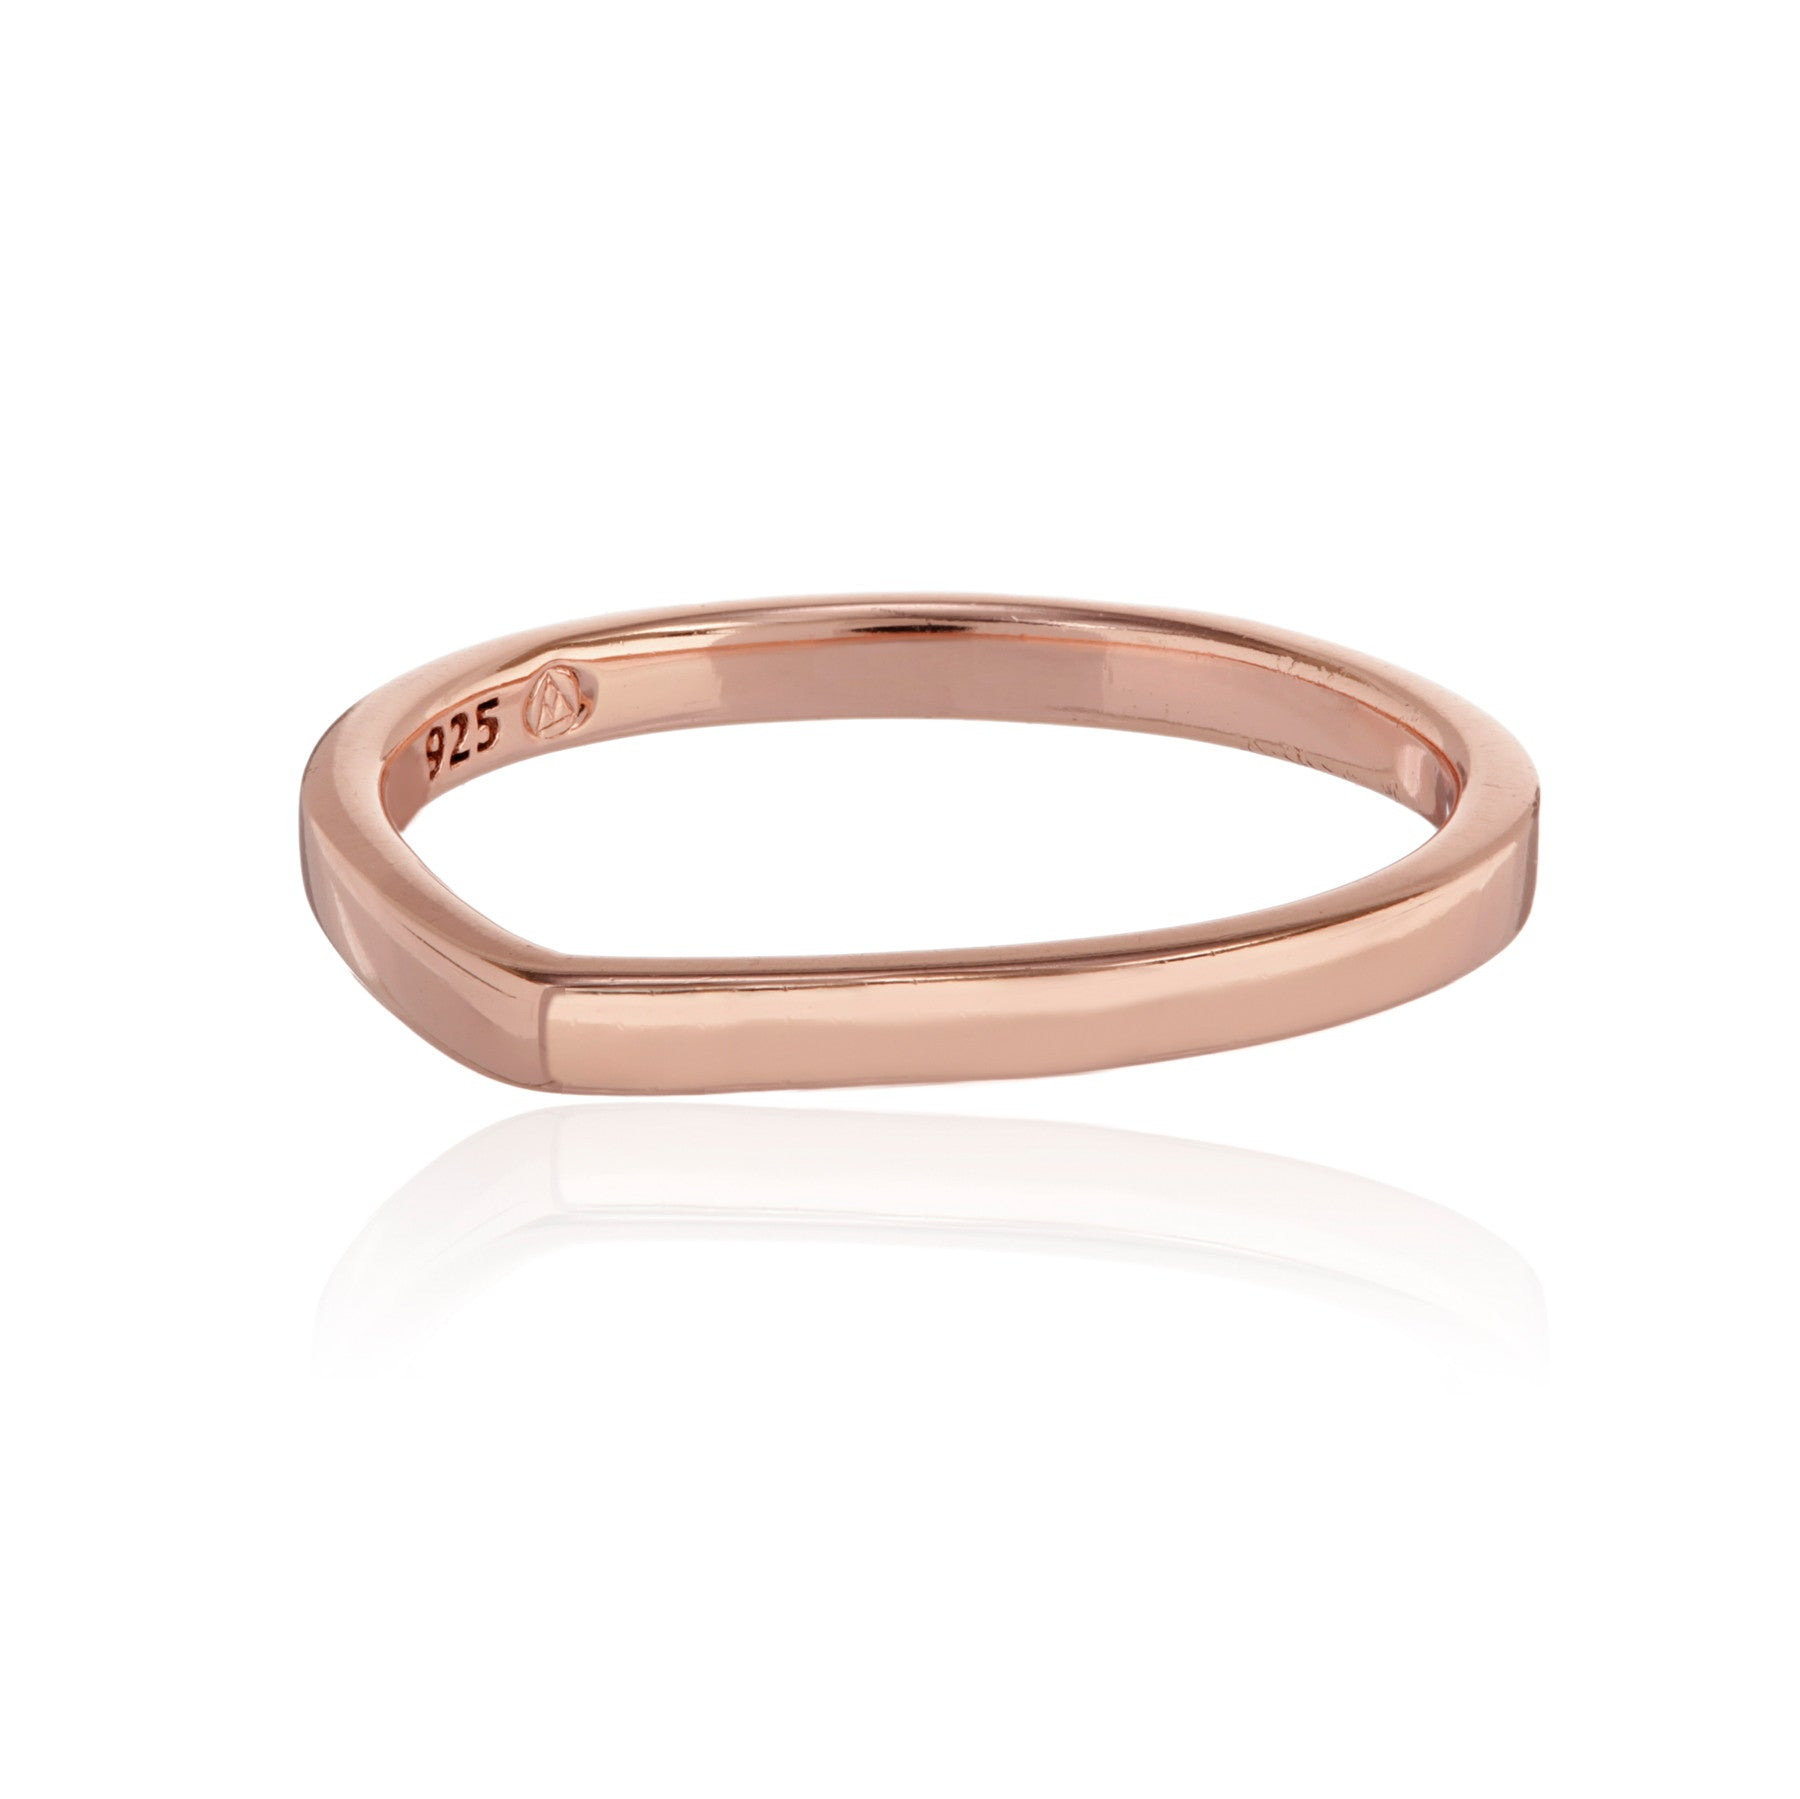 Marie Teardrop Stacking Ring